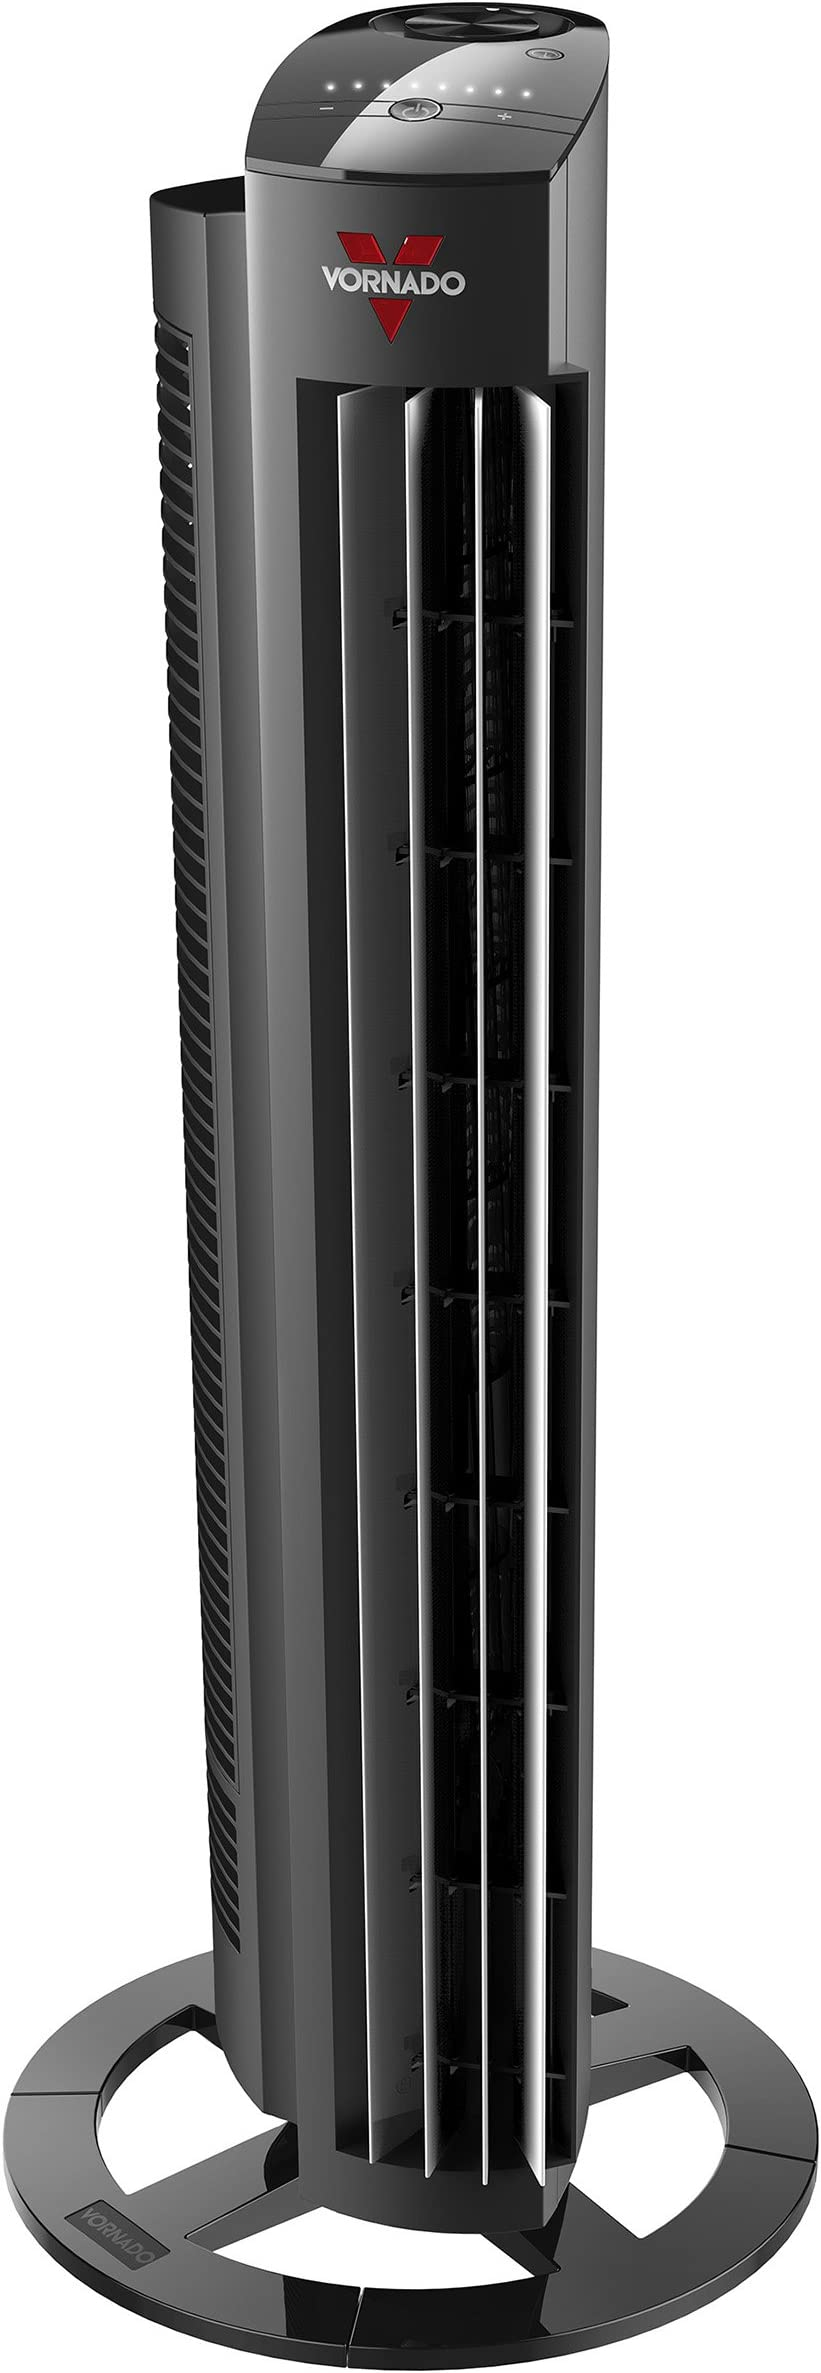 "Vornado NGT335 Air Circulator Tower Fan with Remote Control and Versa-Flow, 33"", NGT335-33, Black"